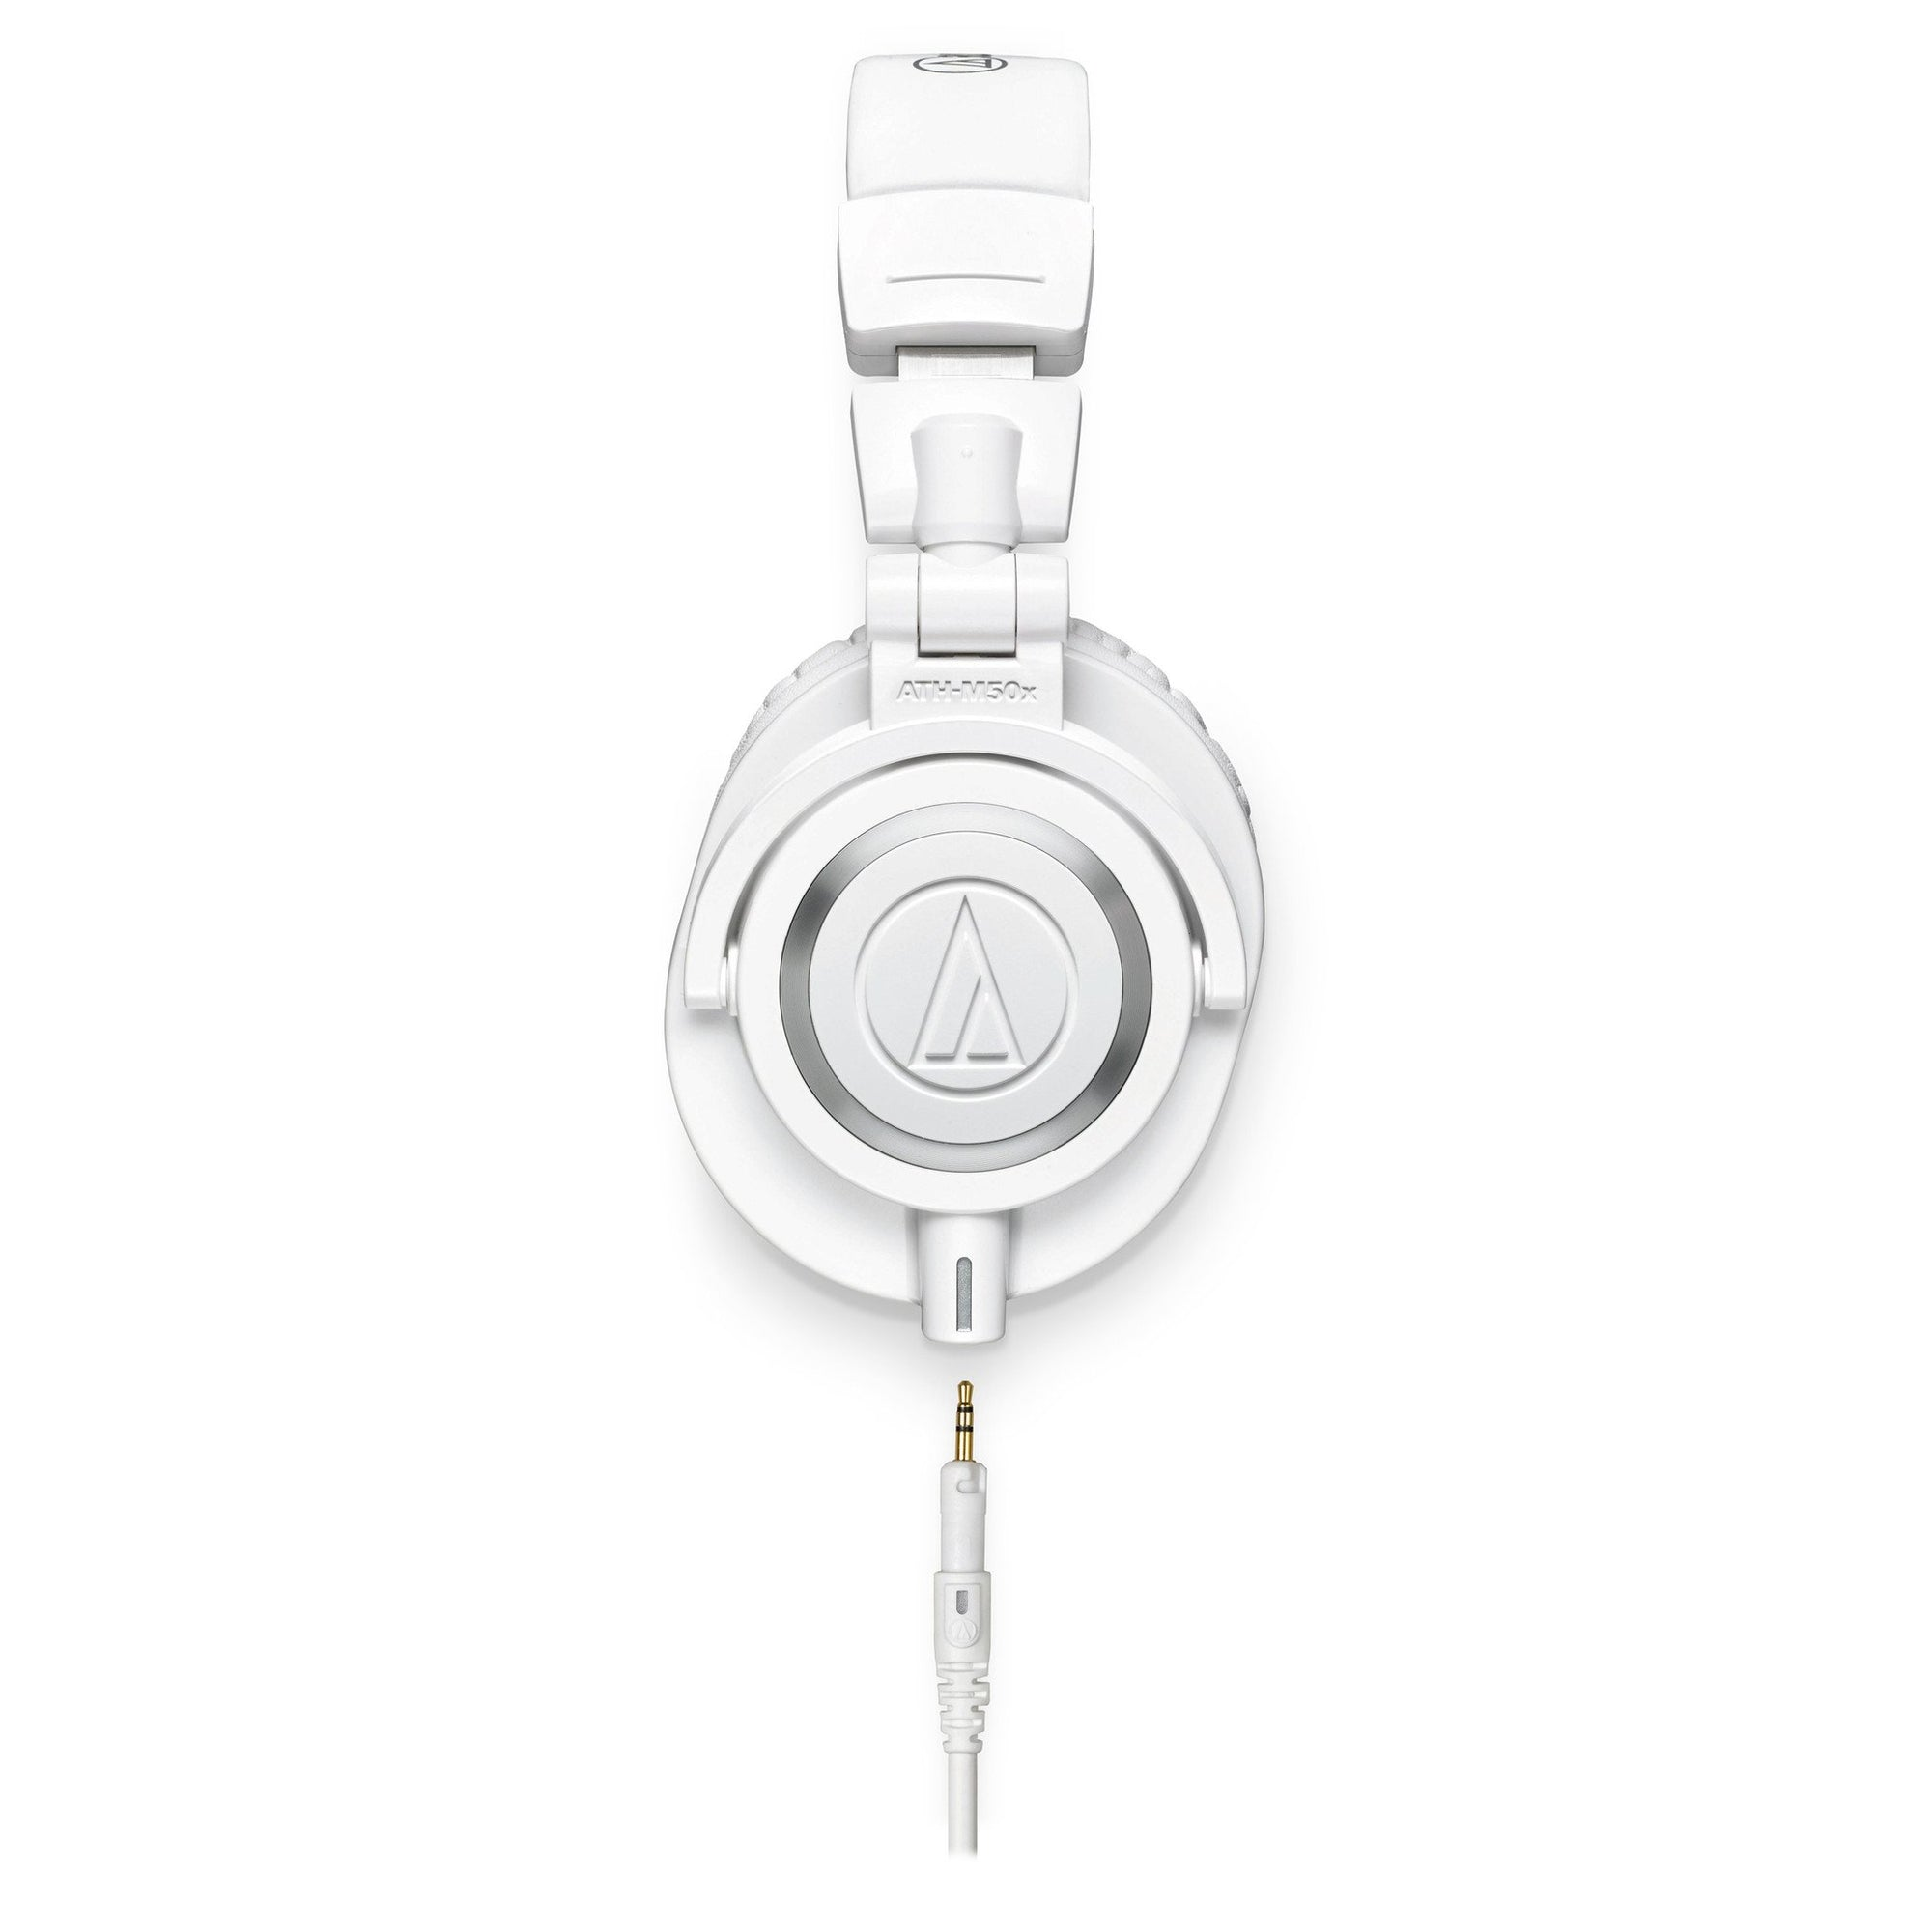 Closed Headphones - Audio-Technica ATH-M50x Closed Headphones WHITE